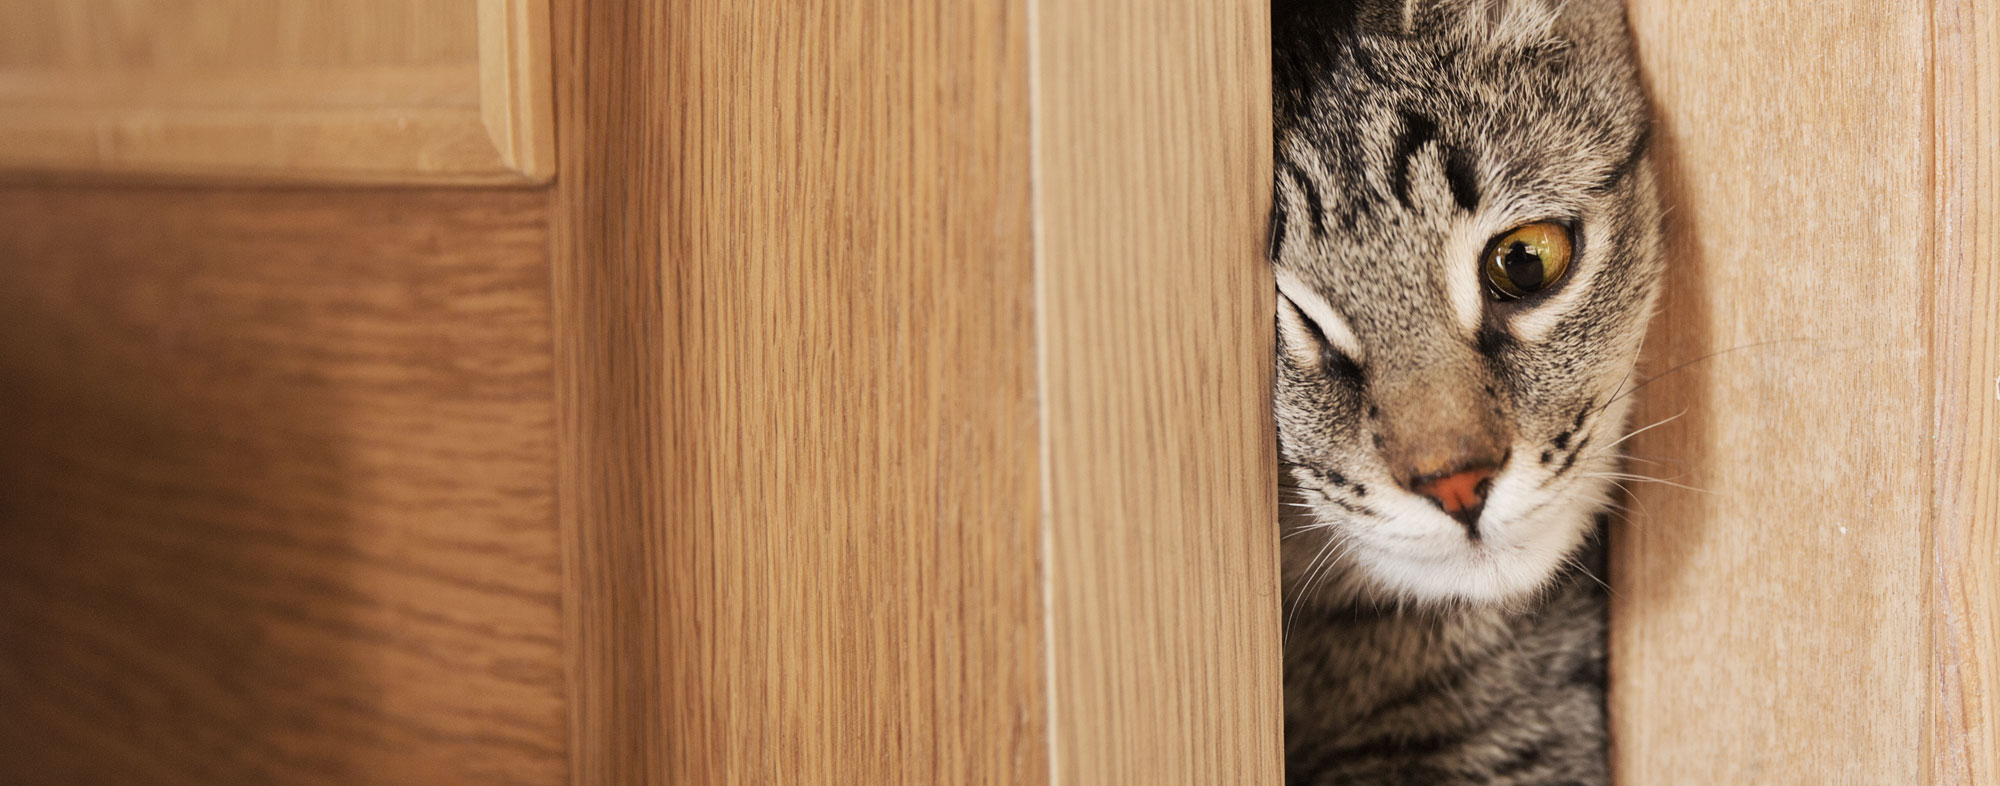 Maintain pet insurance for your cat in case of any accidents